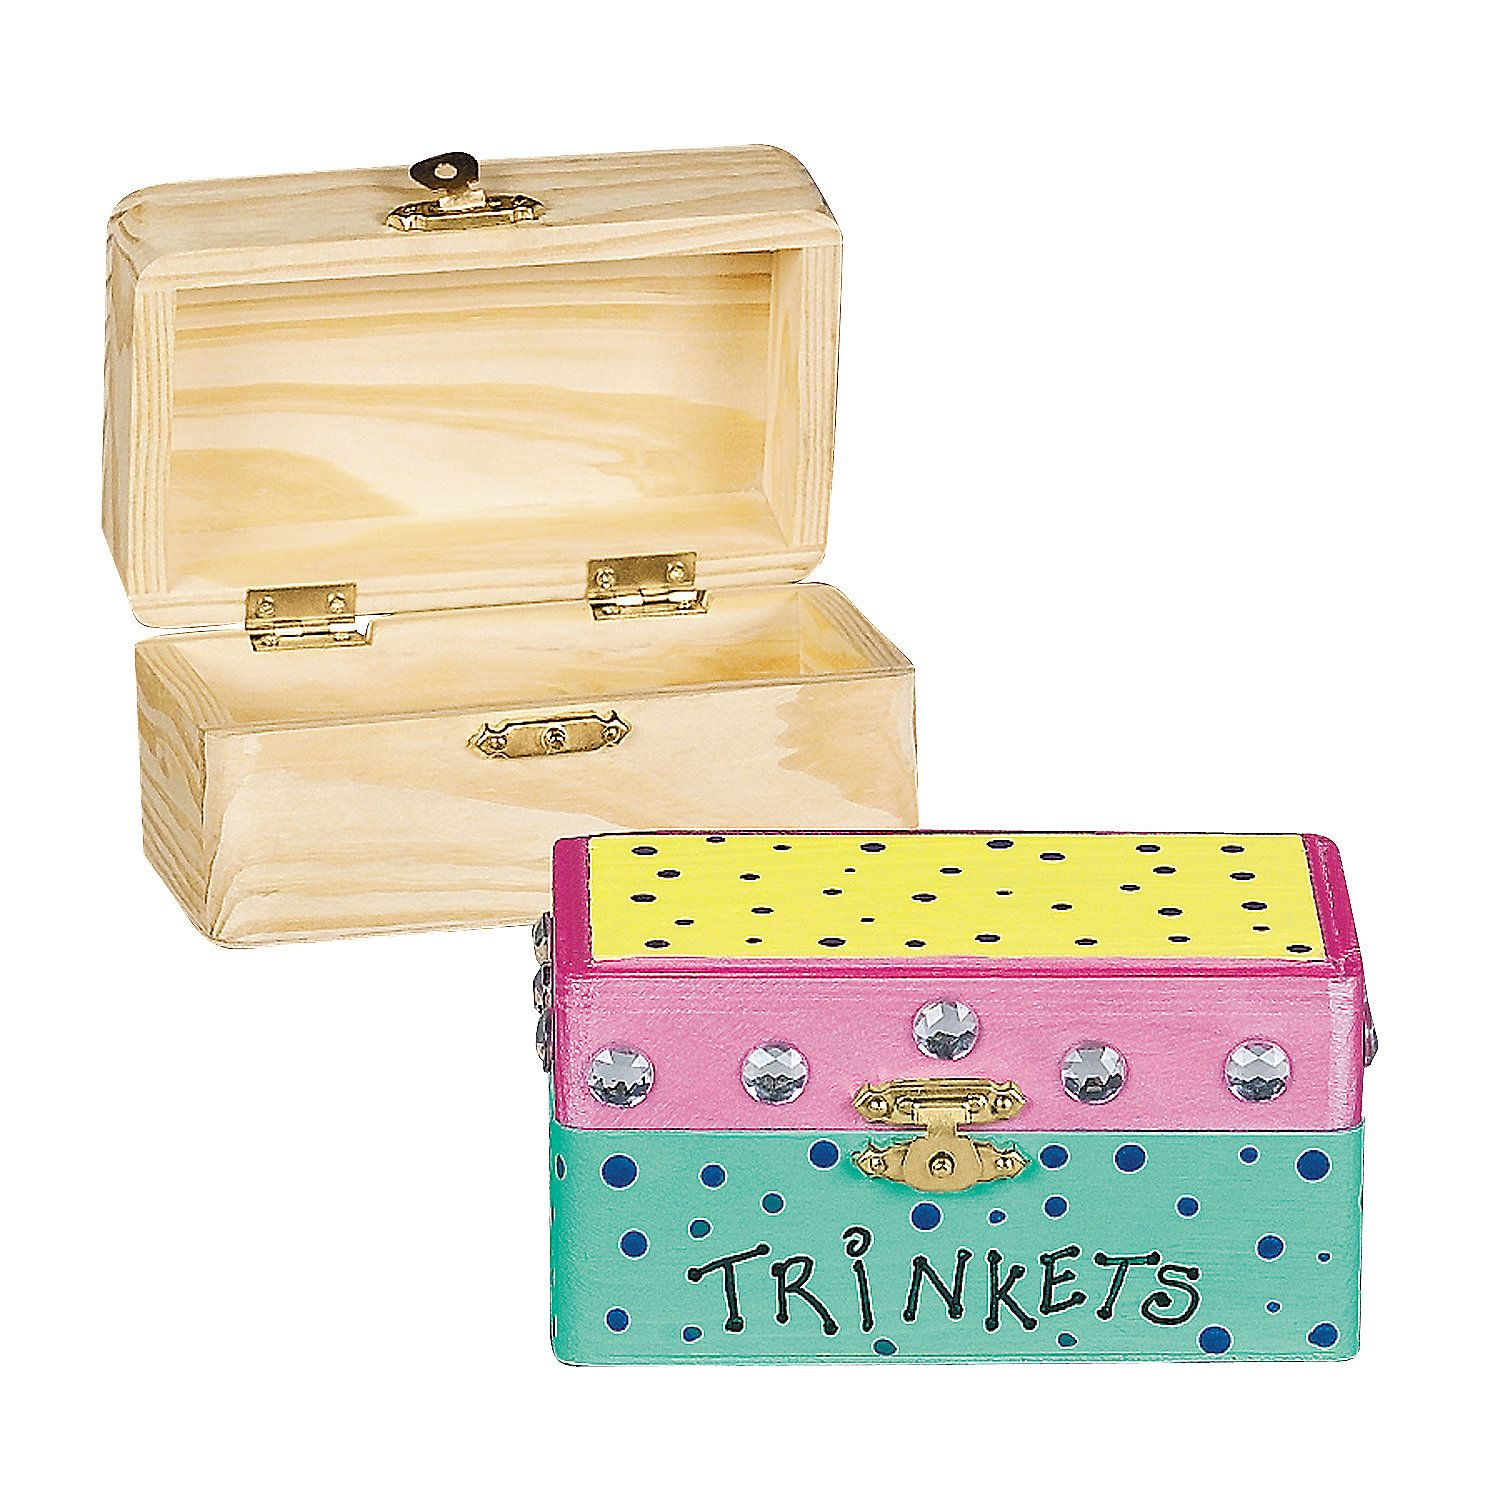 Diy Unfinished Wood Hinged Boxes Orientaltrading Com Wooden Box Crafts Wood Hinges Treasure Chest Craft